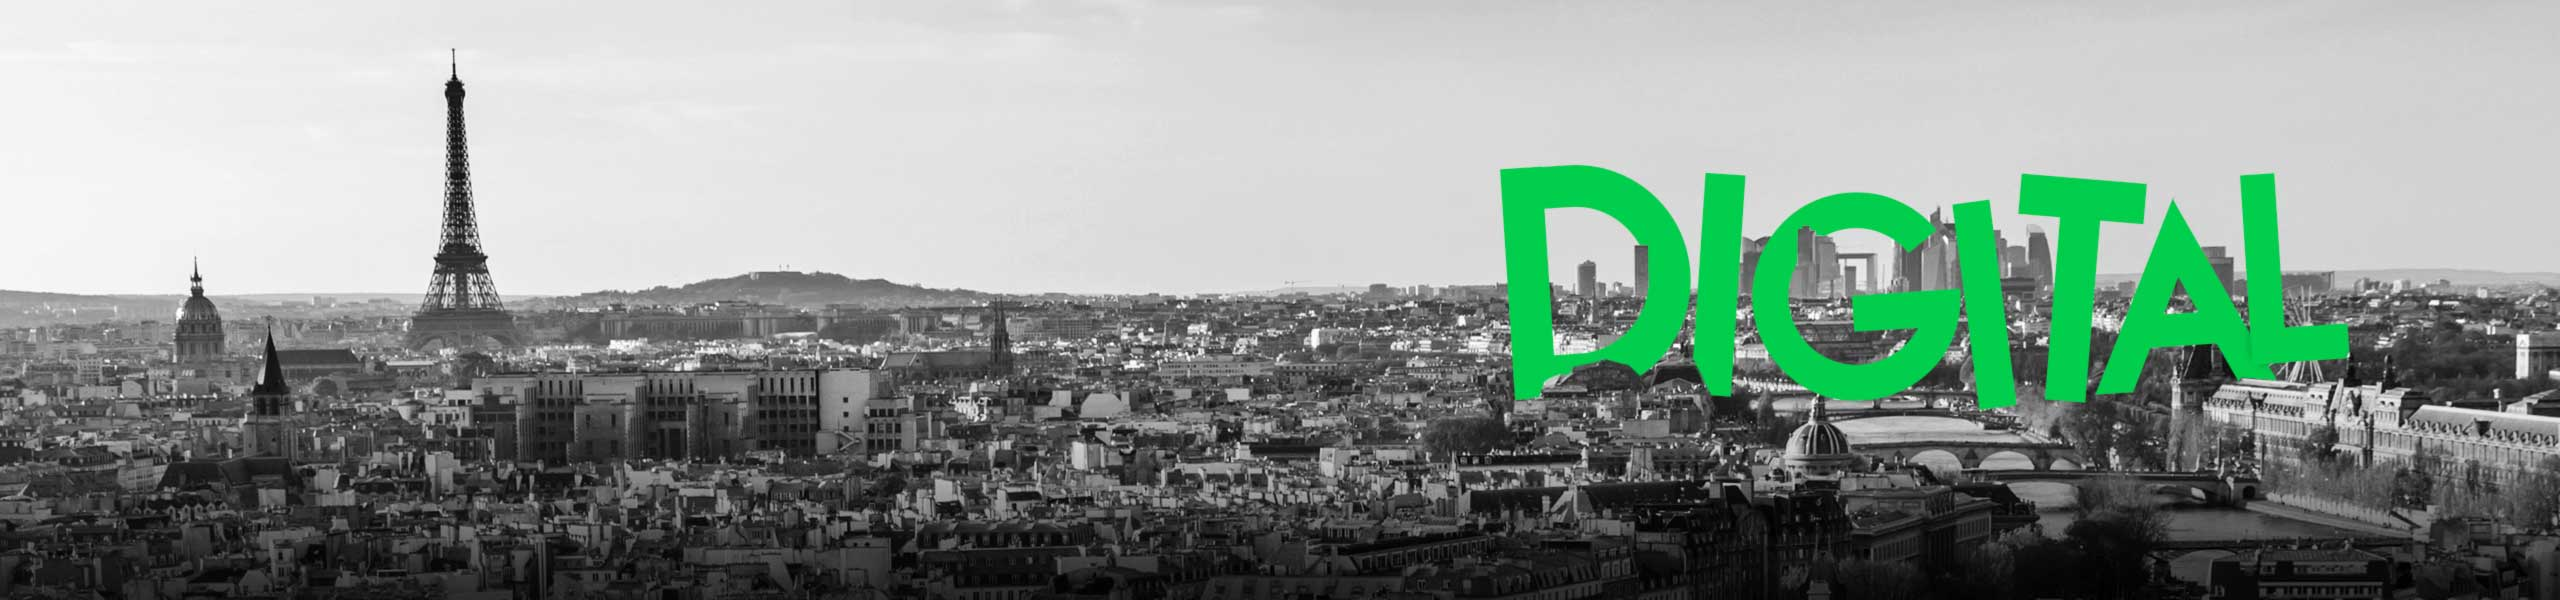 Openfield à l'Innovation Summit Paris 2018 | Schneider Electric